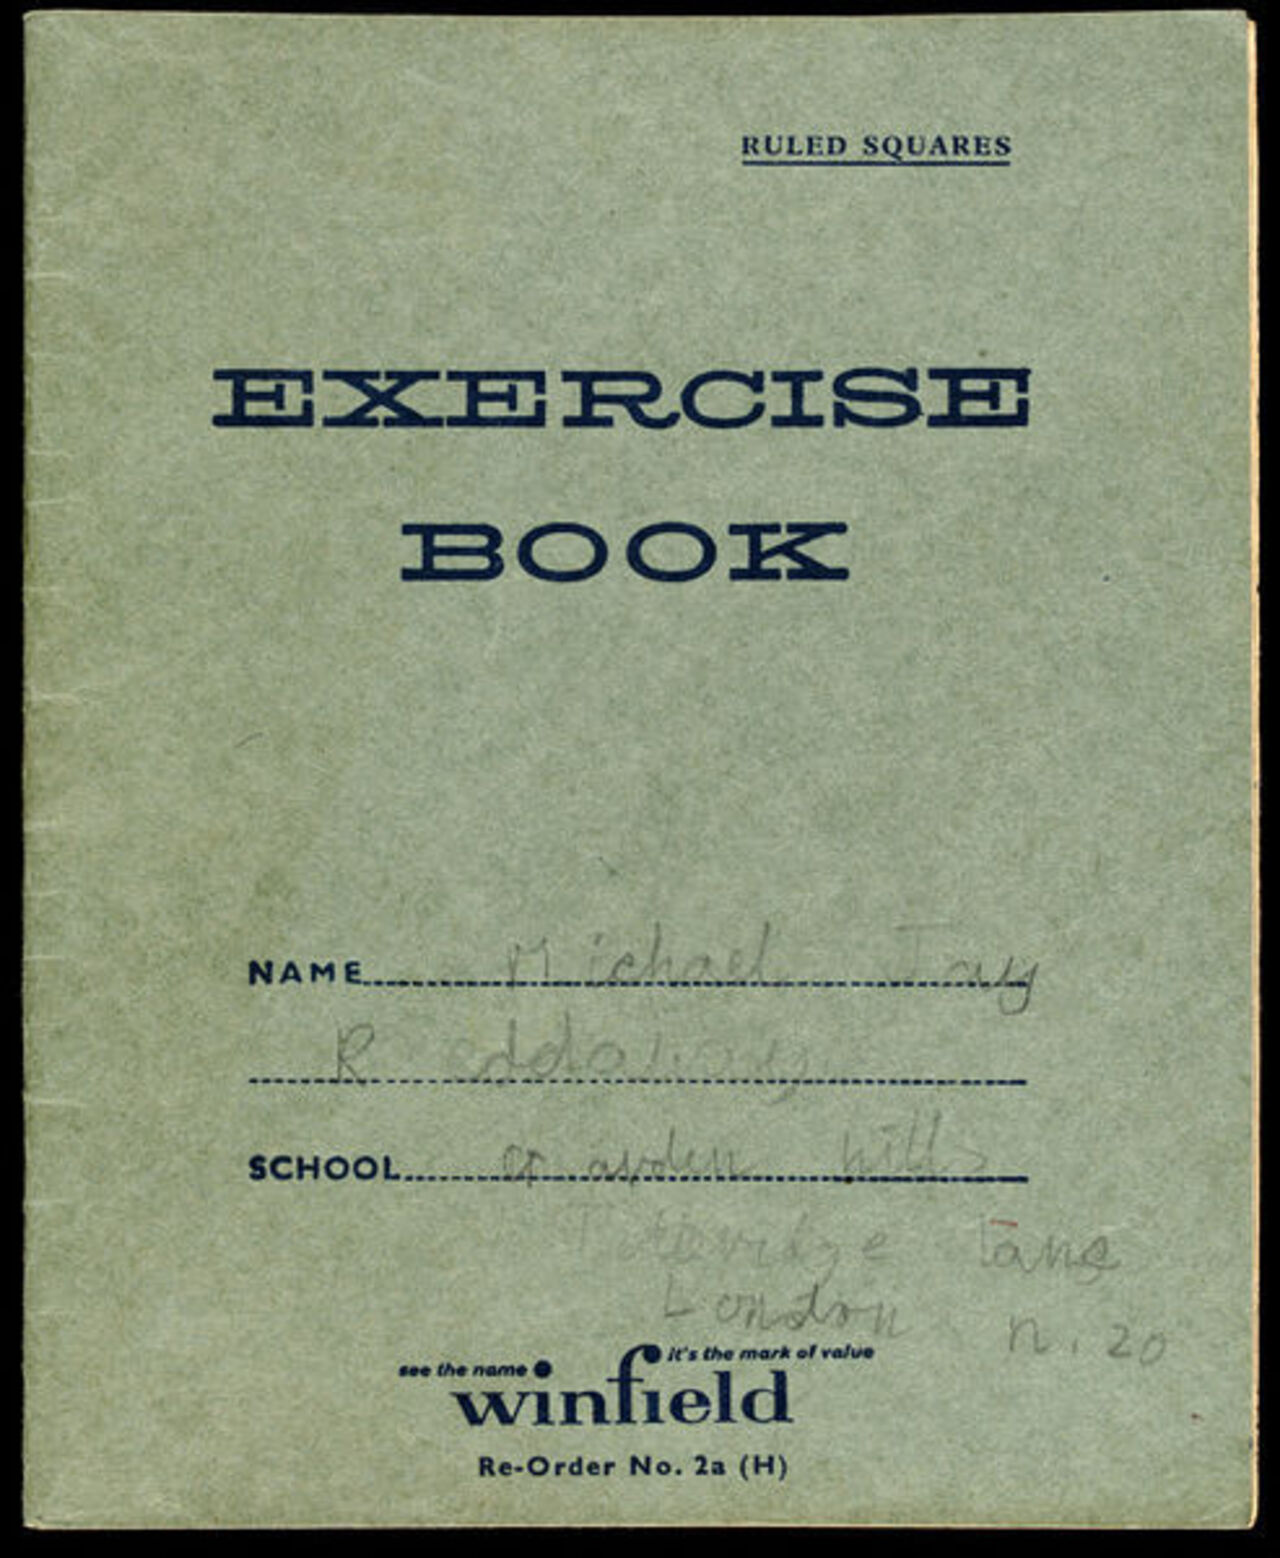 Photo of a green exercise jotter.